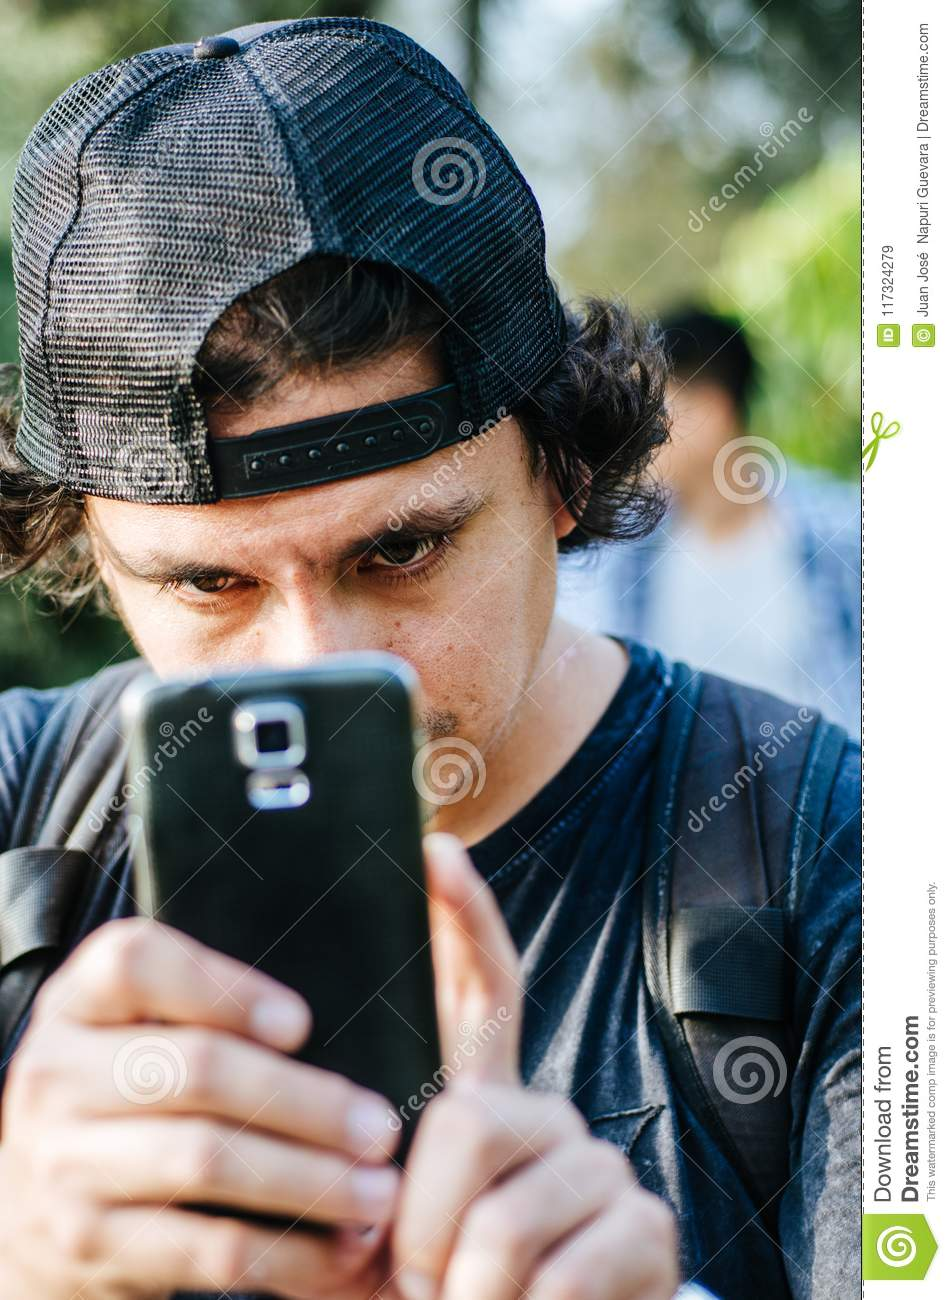 Portrait of an attractive teen boy holding his smartphone with his hand and take photograph.